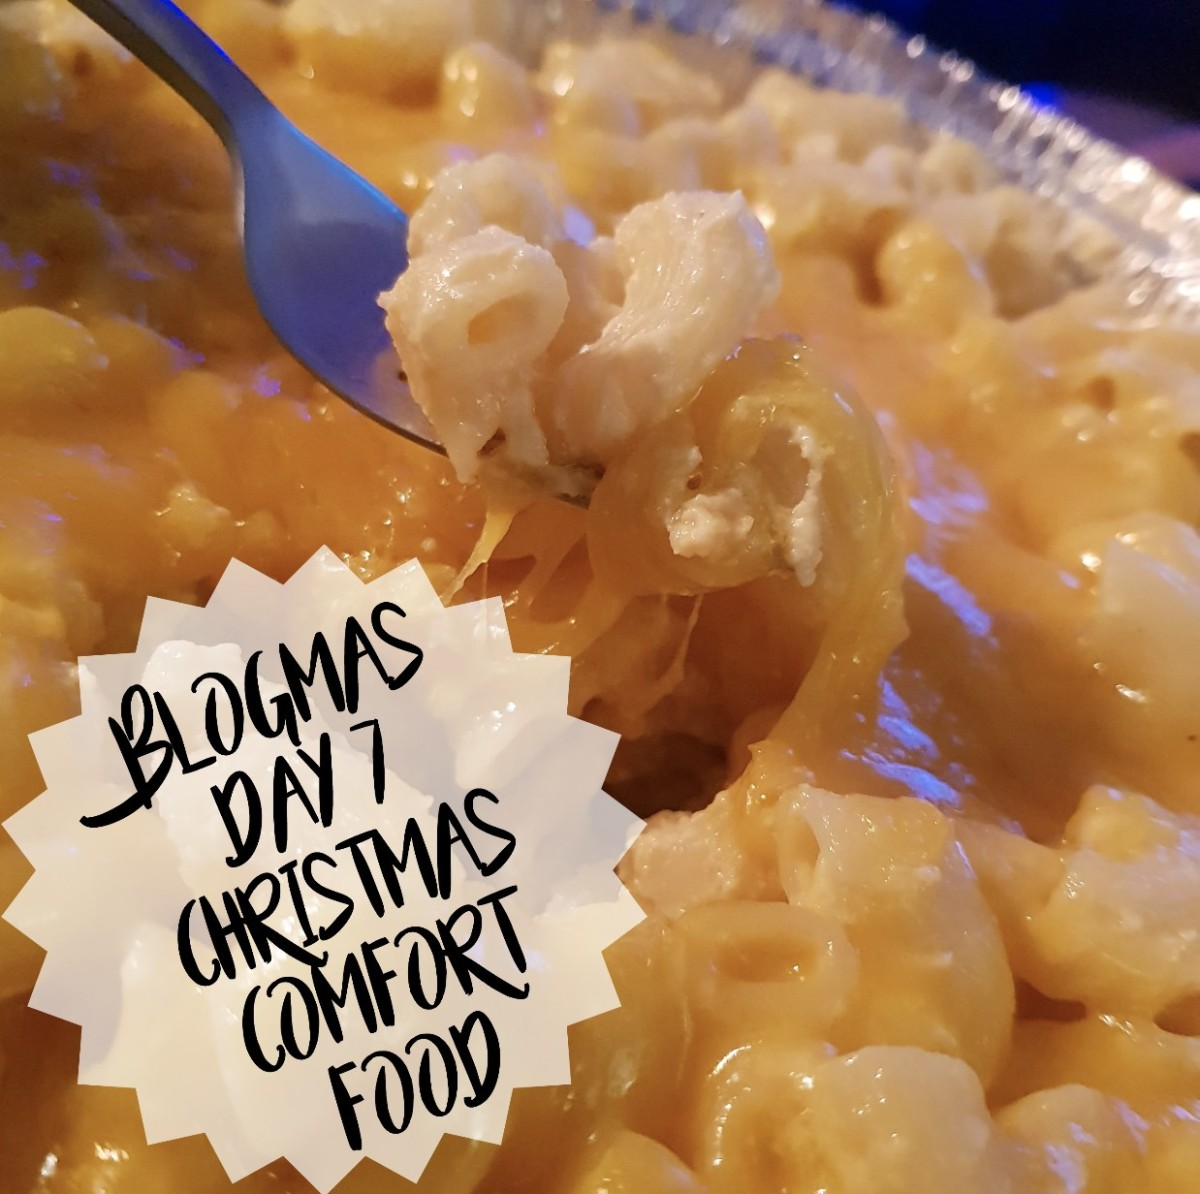 #BLOGMAS Day 7 | Christmas Comfort Food, BlogMas, Christmas, Festive, Festivities, Festive Season, It's Christmas, It's Beginning to look a lot like Christmas, Xmas, Feliz Navidad, Buon Natale, Eating, Food, Comfort Food, Foodie, Festive Food, Macaroni Cheese, Waffle Jacks Wimbledon. Pinterest, Blog A Book Etc, Fay